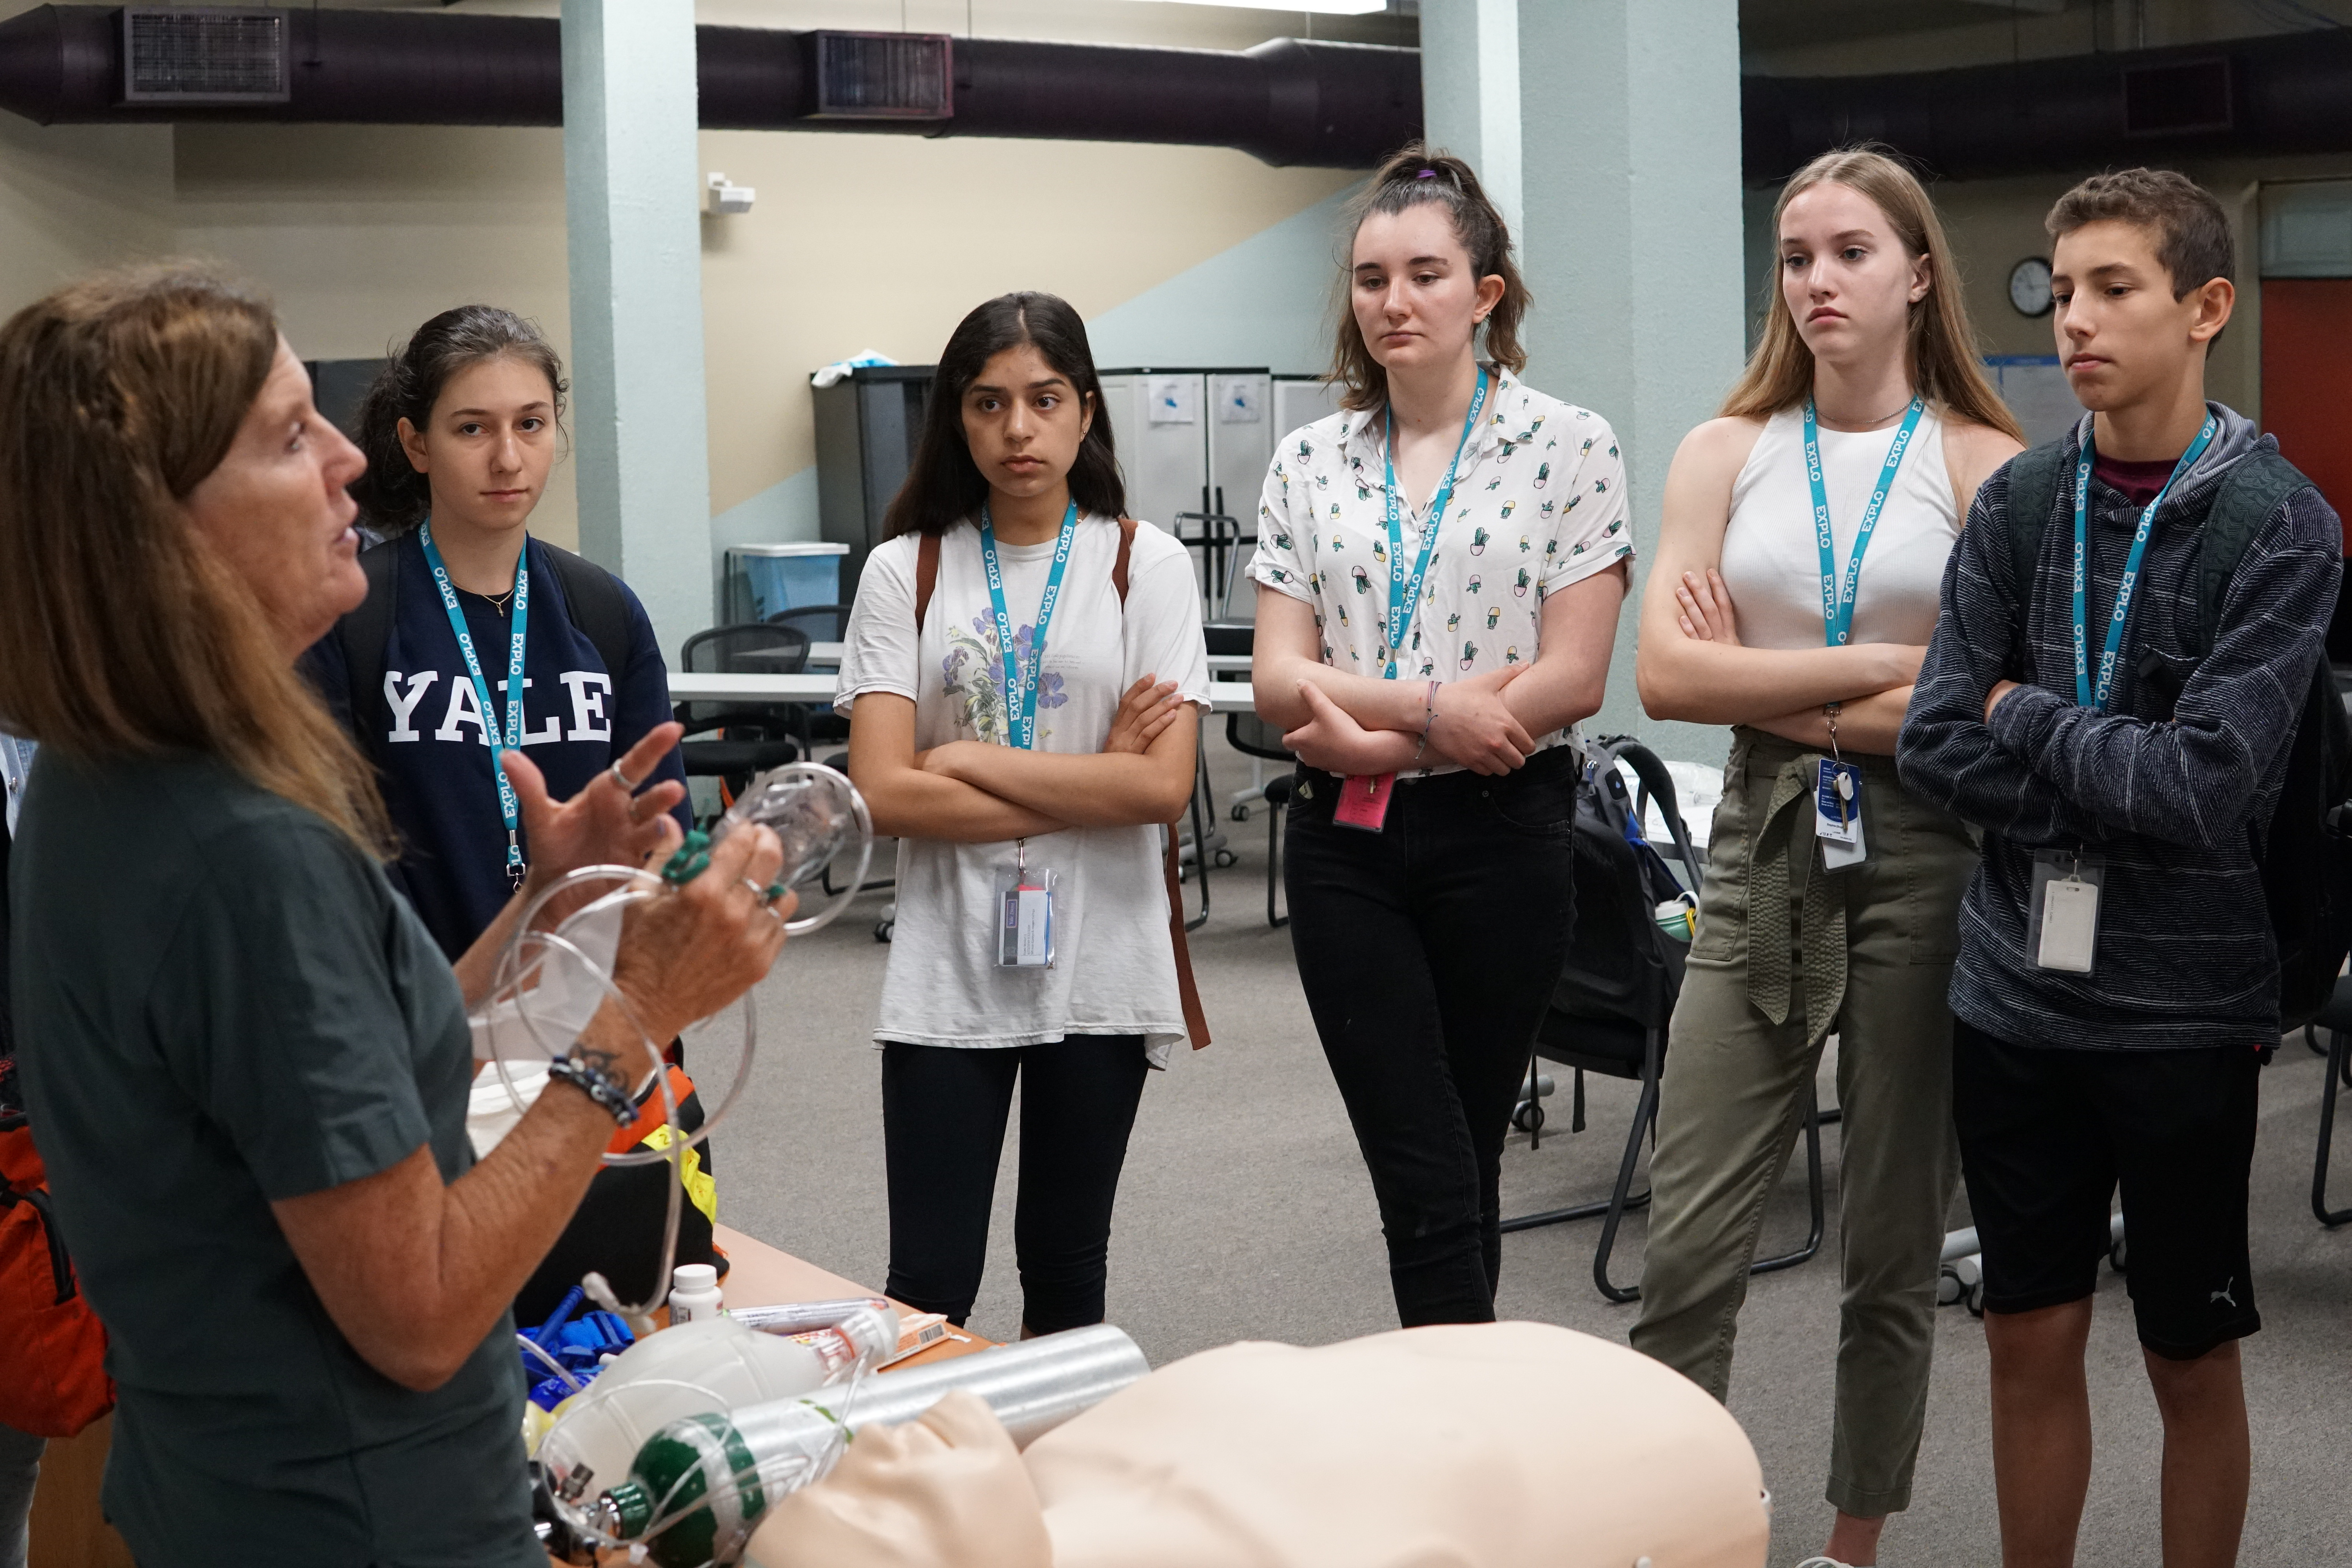 Trip: Yale New Haven Hospital Center for EMS